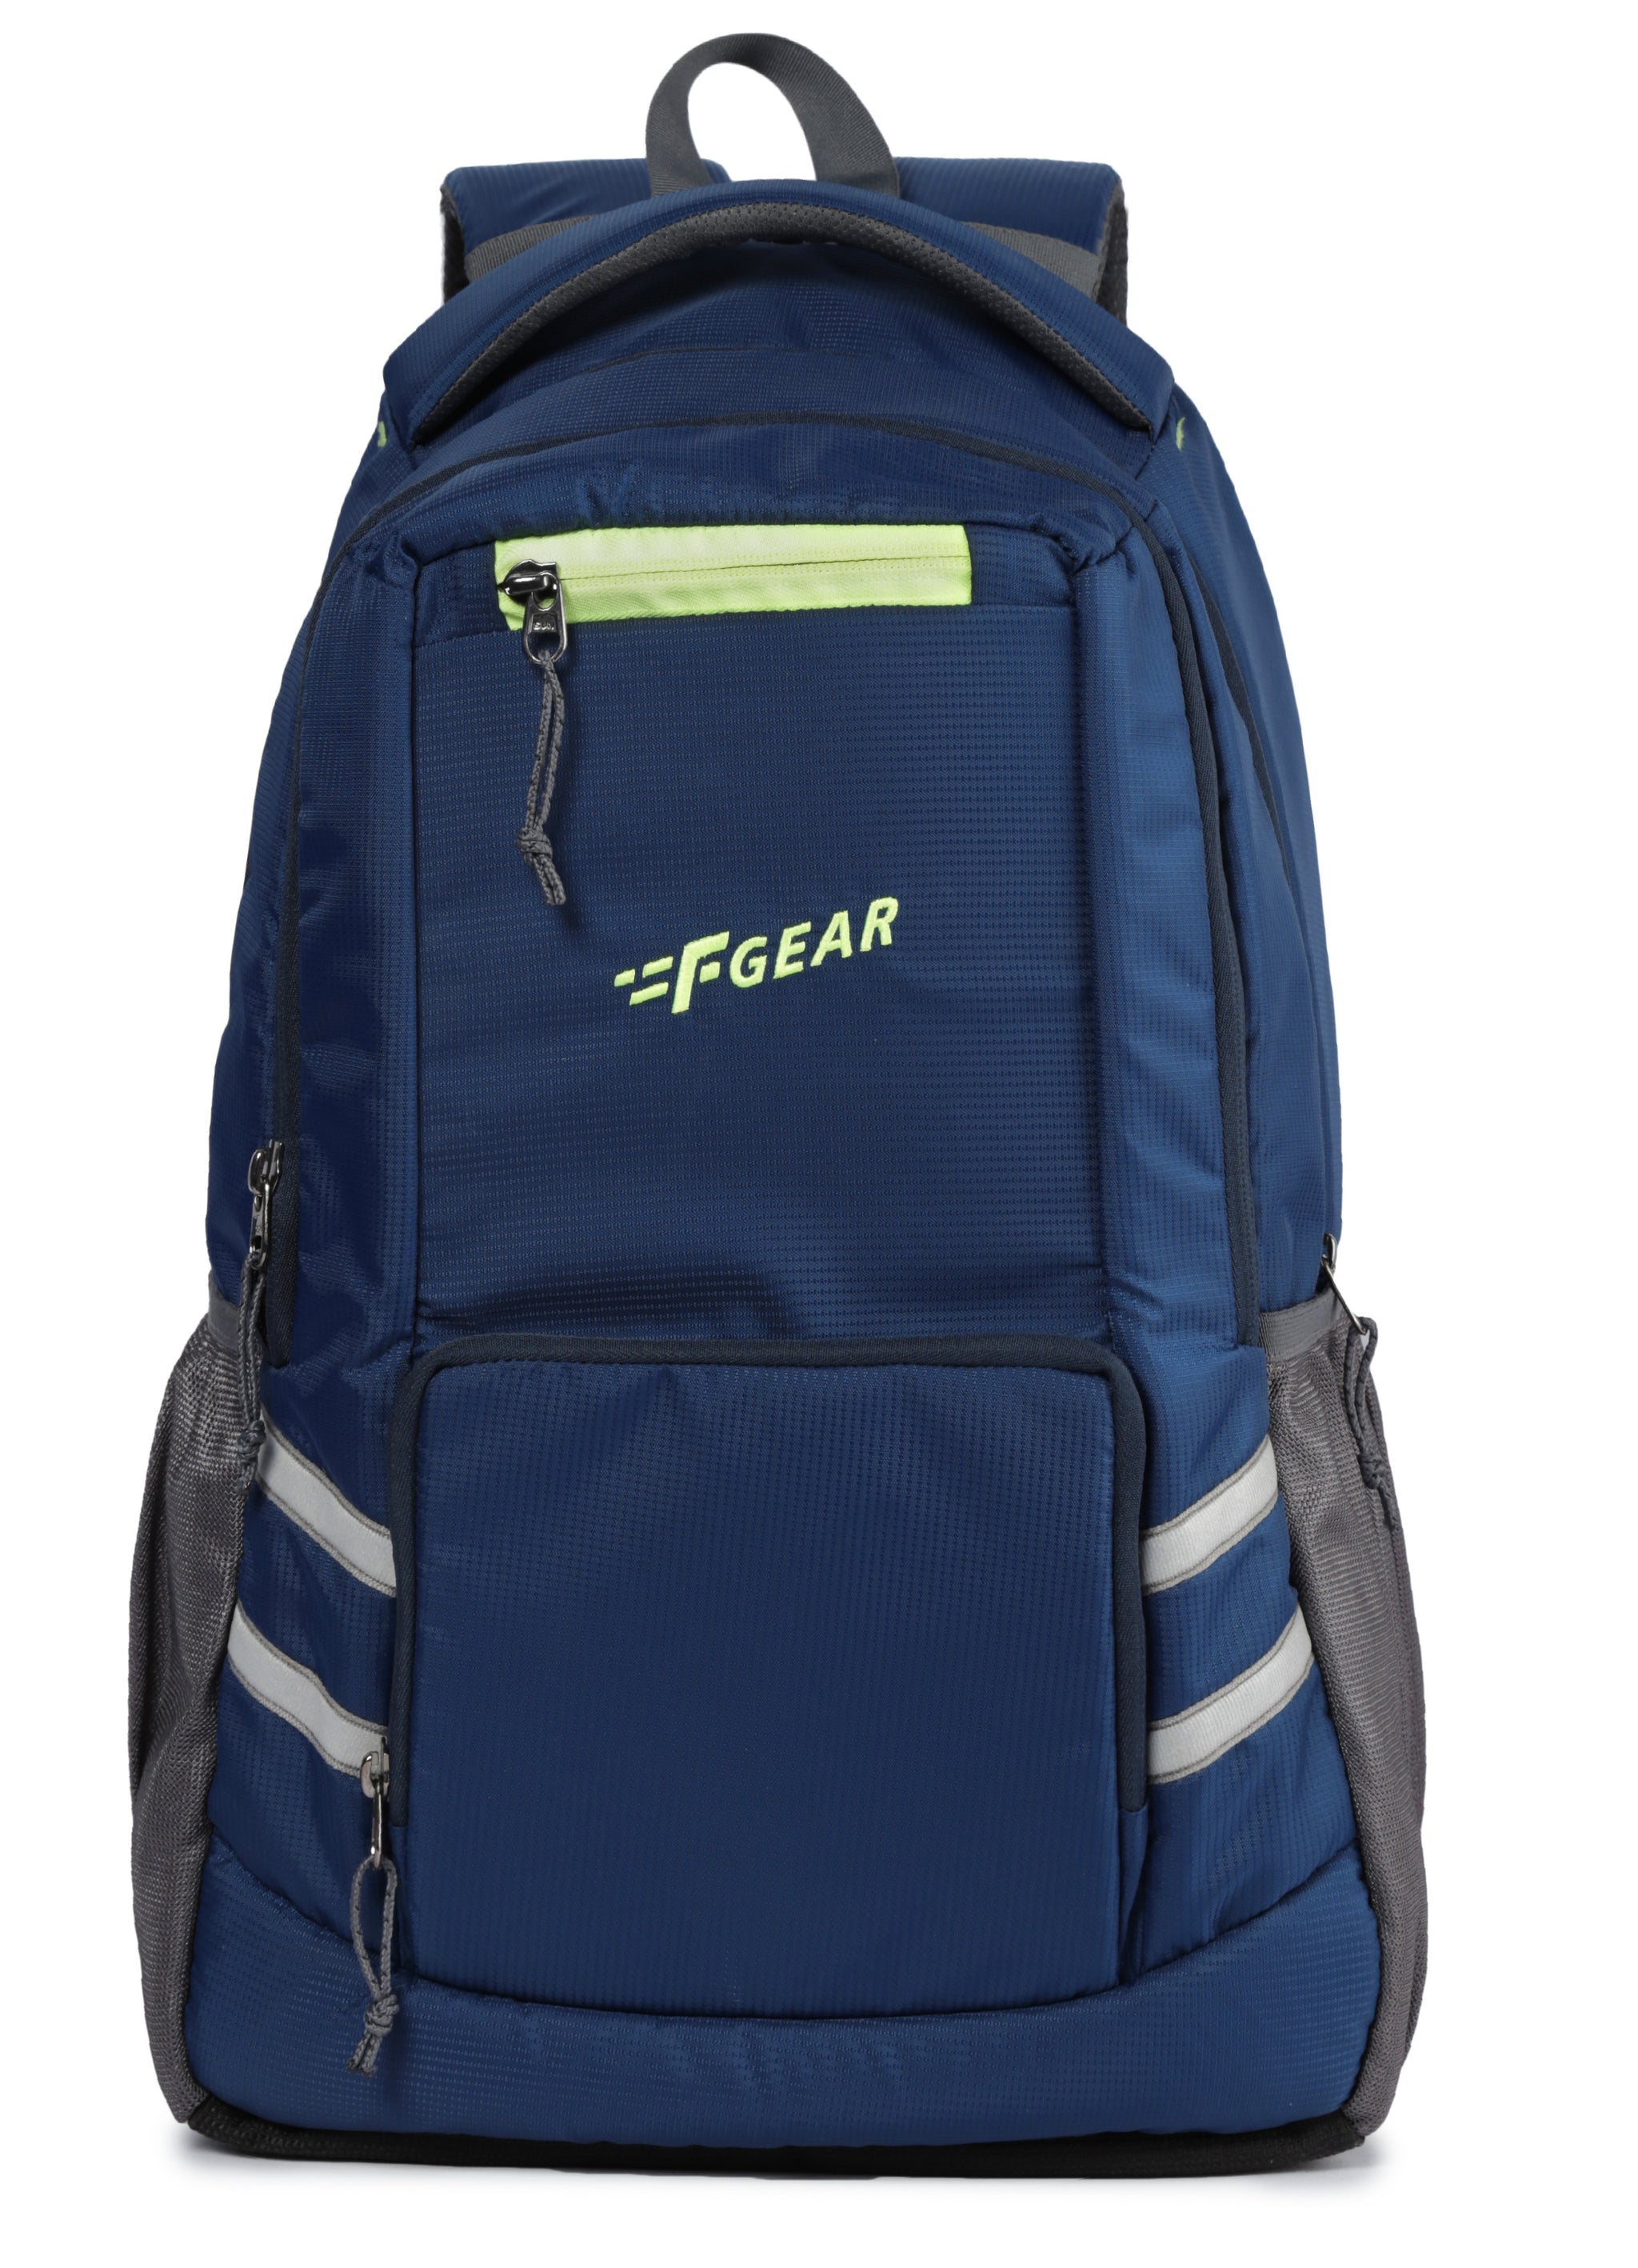 F Gear Intellect Doby Navy Blue 32 Liters Backpack (3147)